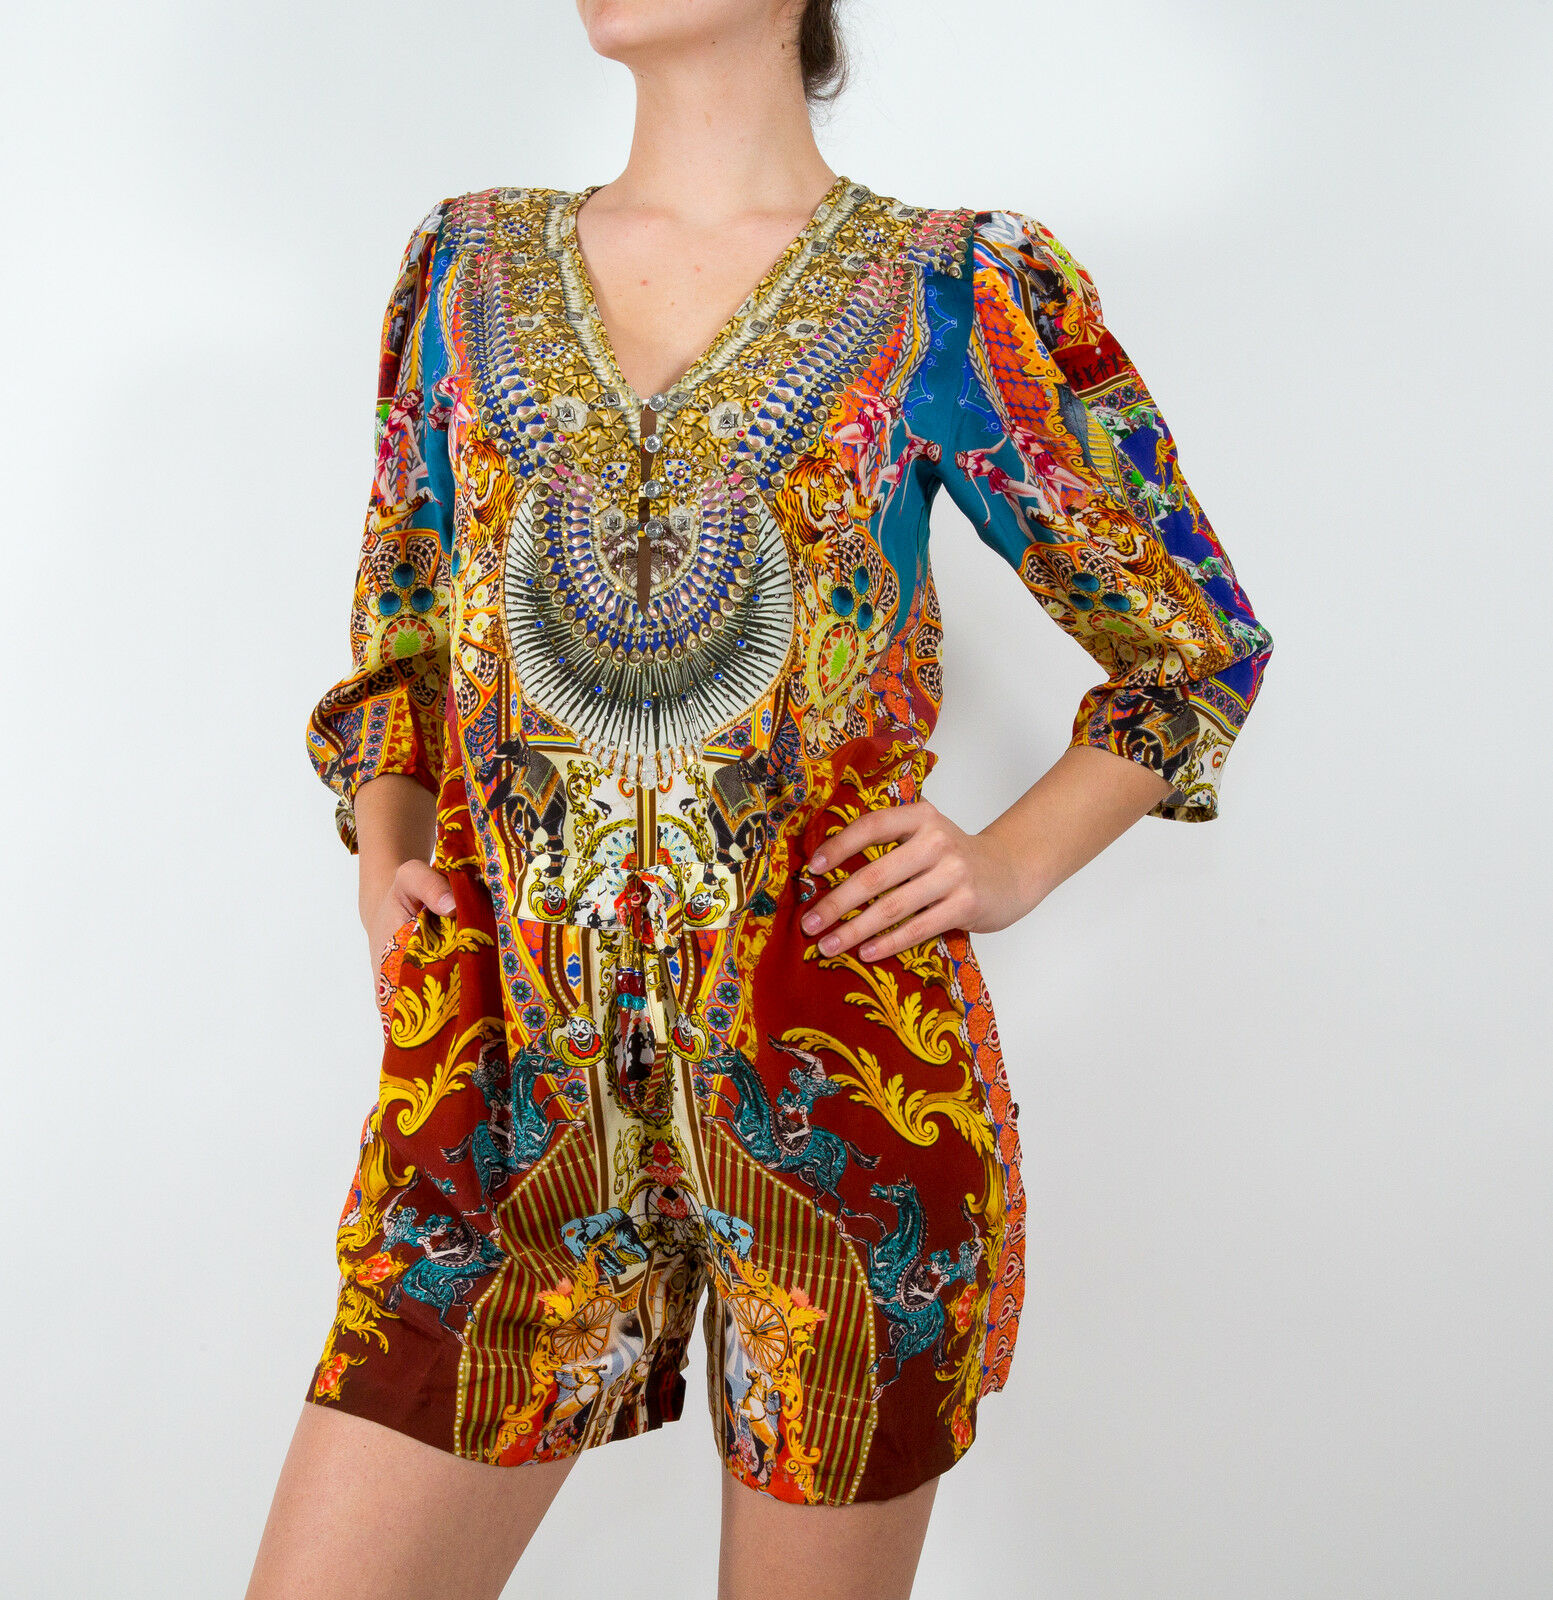 Camilla Franks Long Sleeve Romper in The Ringleader Playsuit size 2